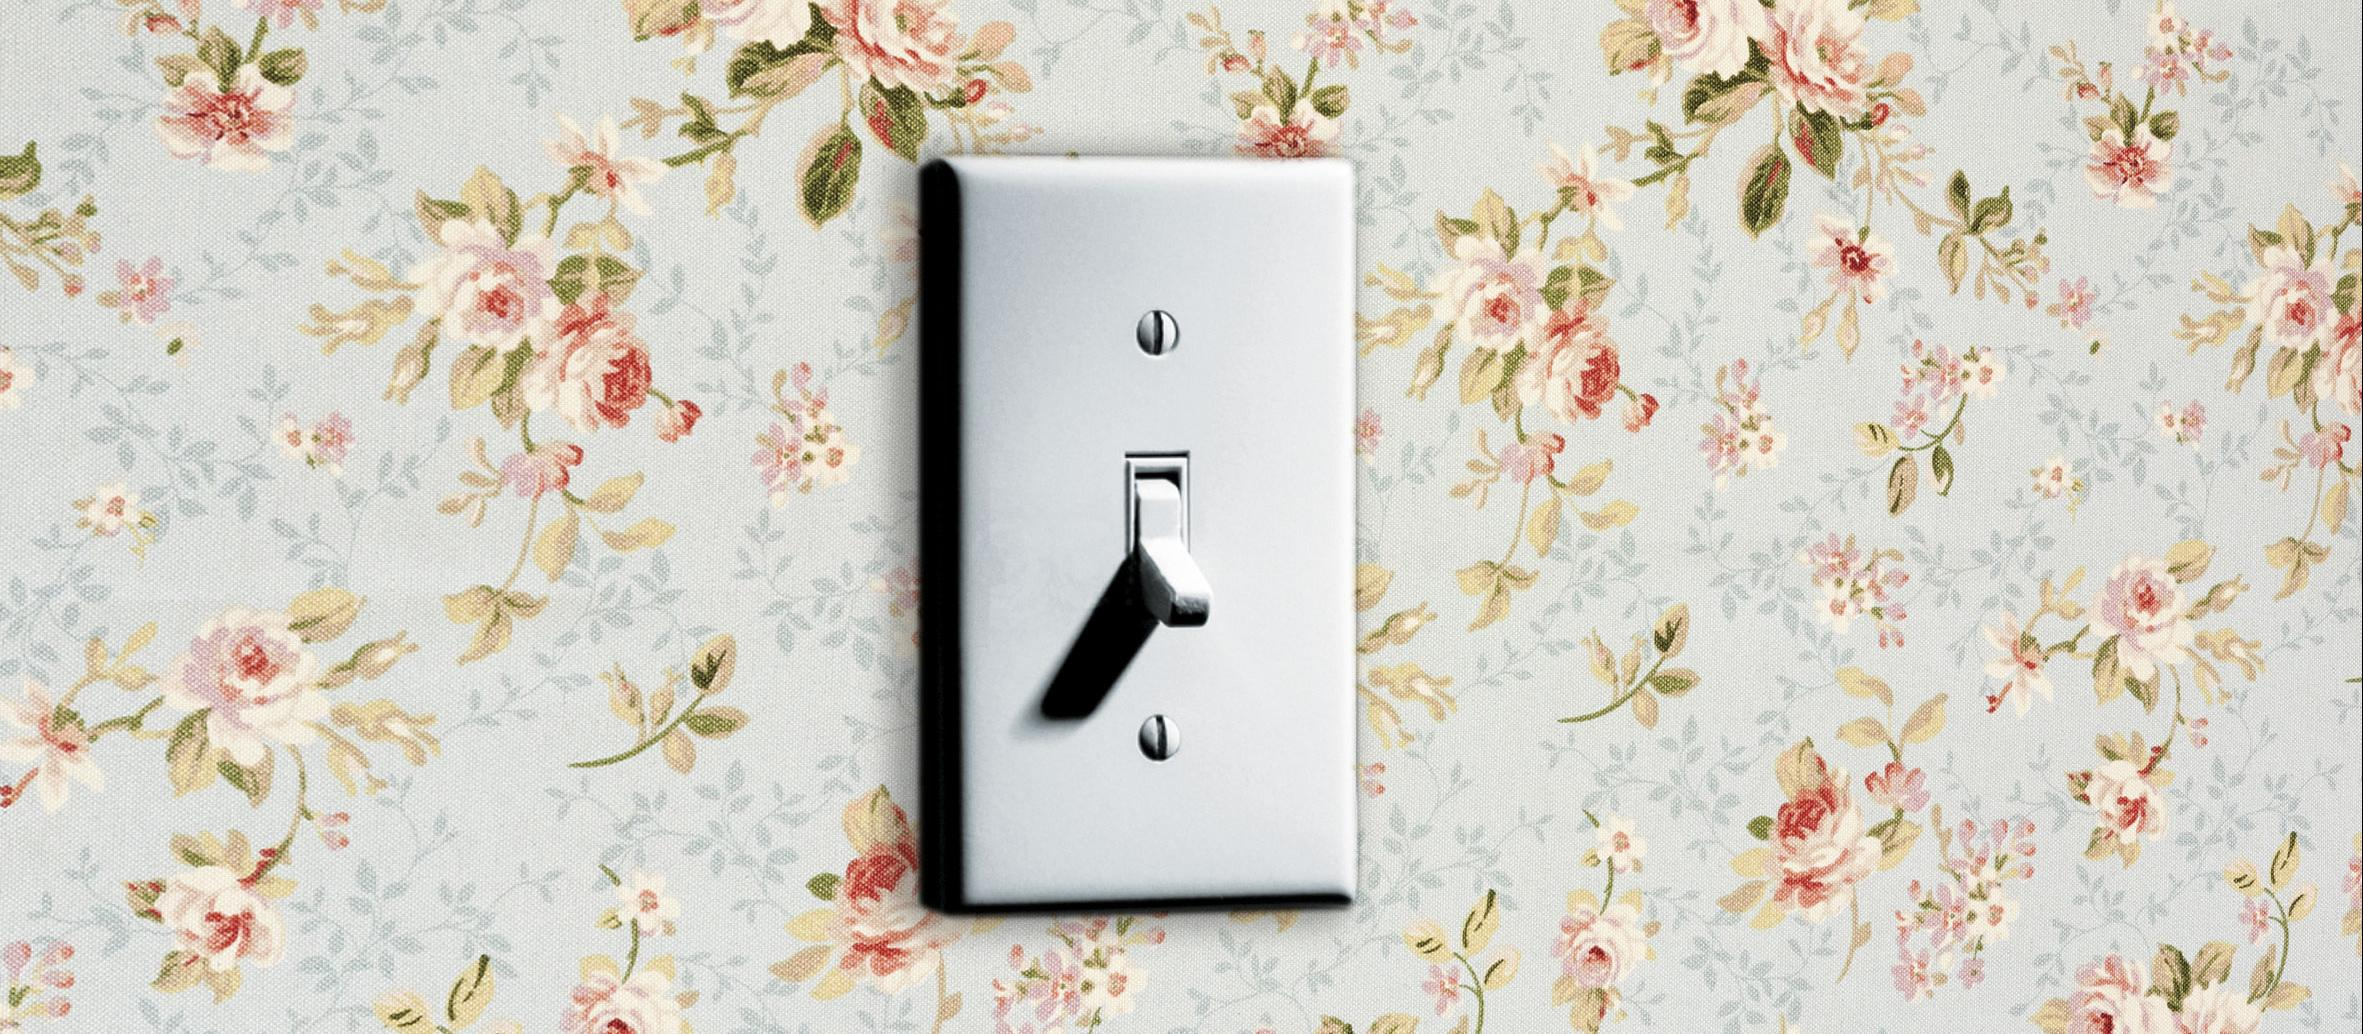 Light switch down erectile dysfunction